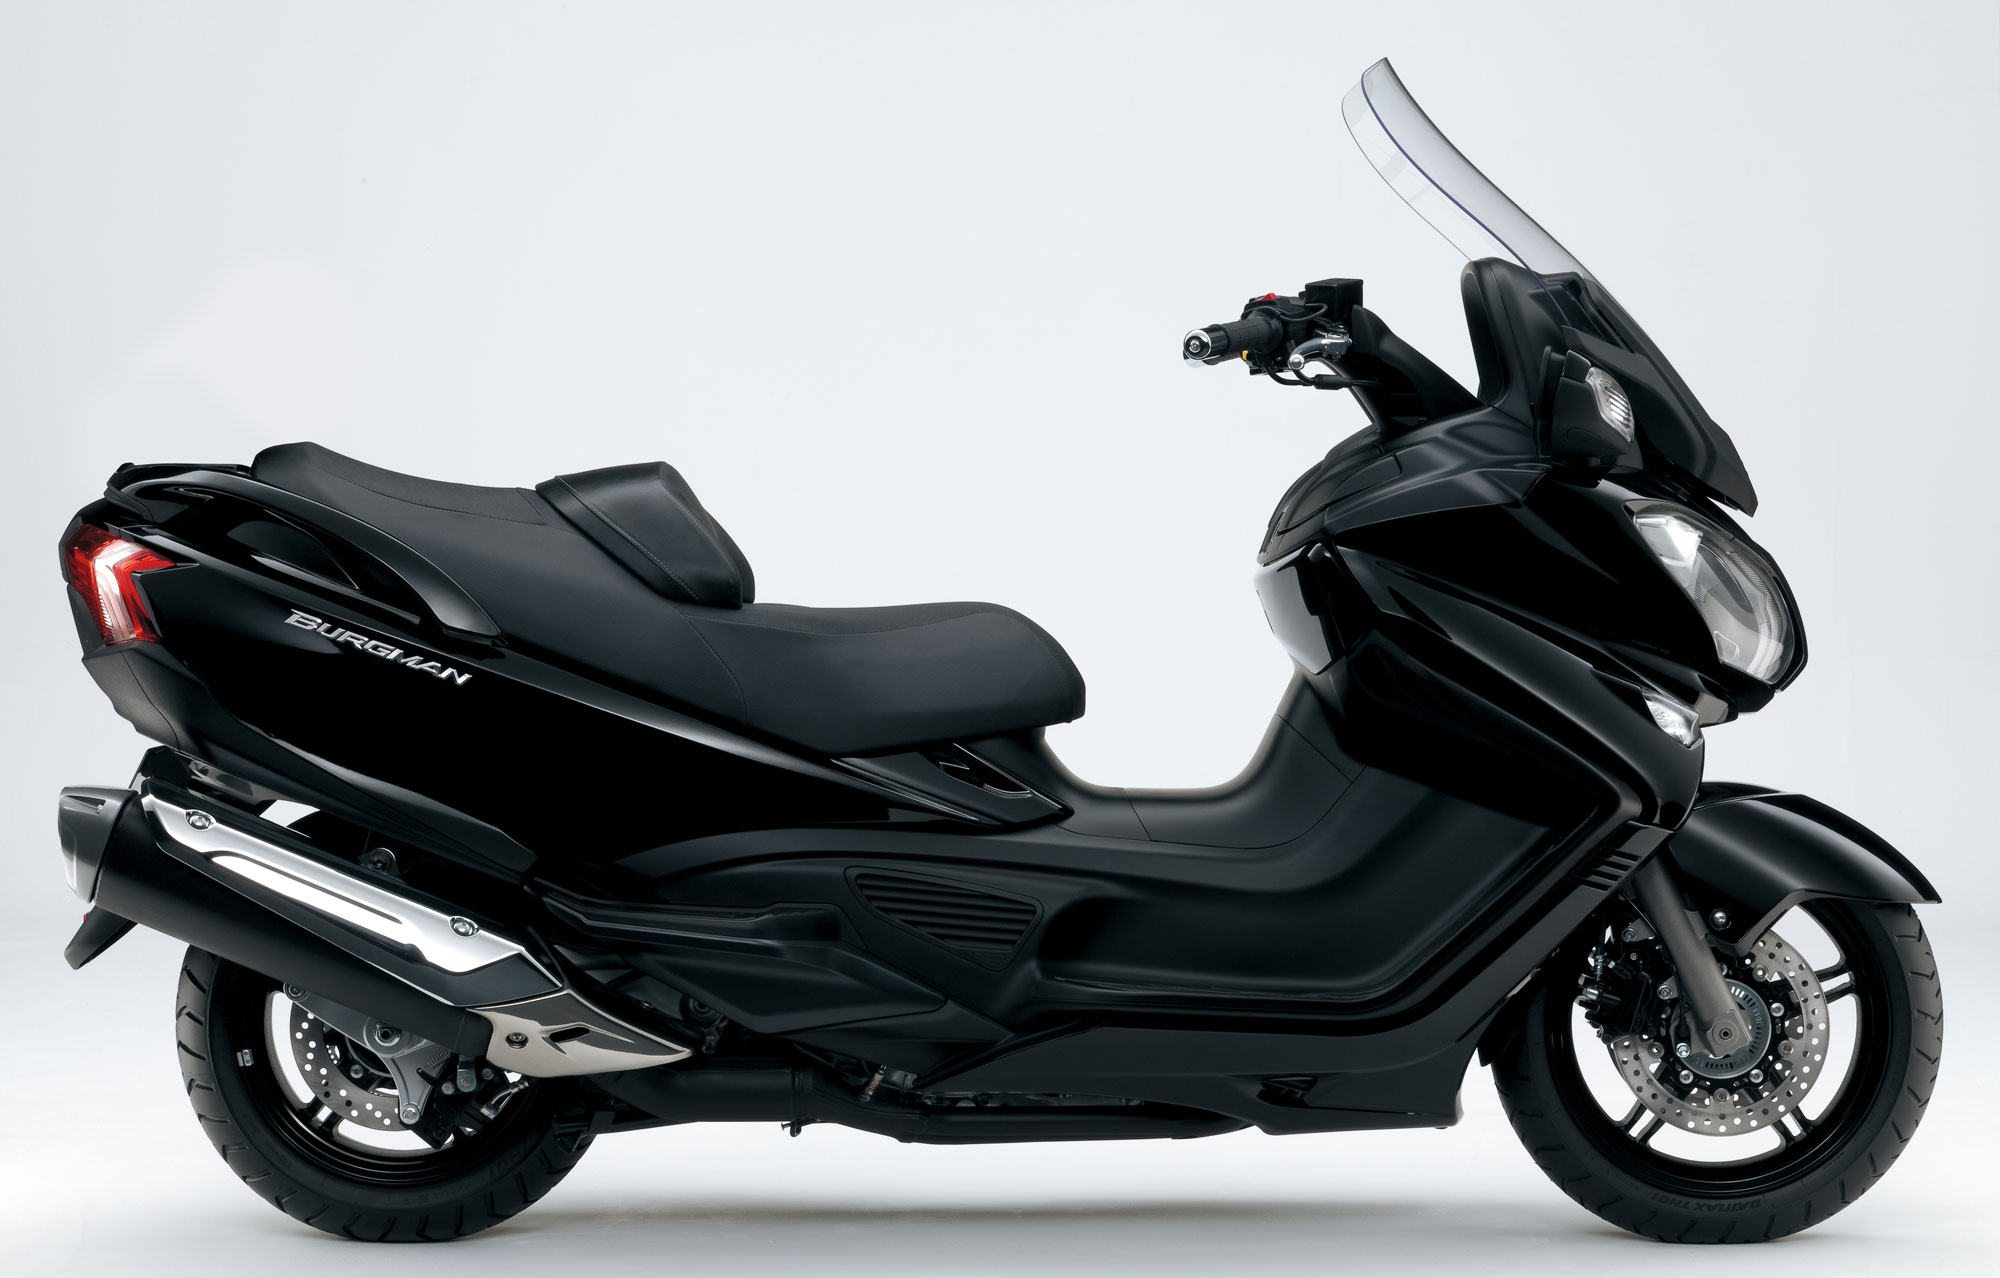 suzuki burgman 650 abs specs 2012 2013 autoevolution. Black Bedroom Furniture Sets. Home Design Ideas